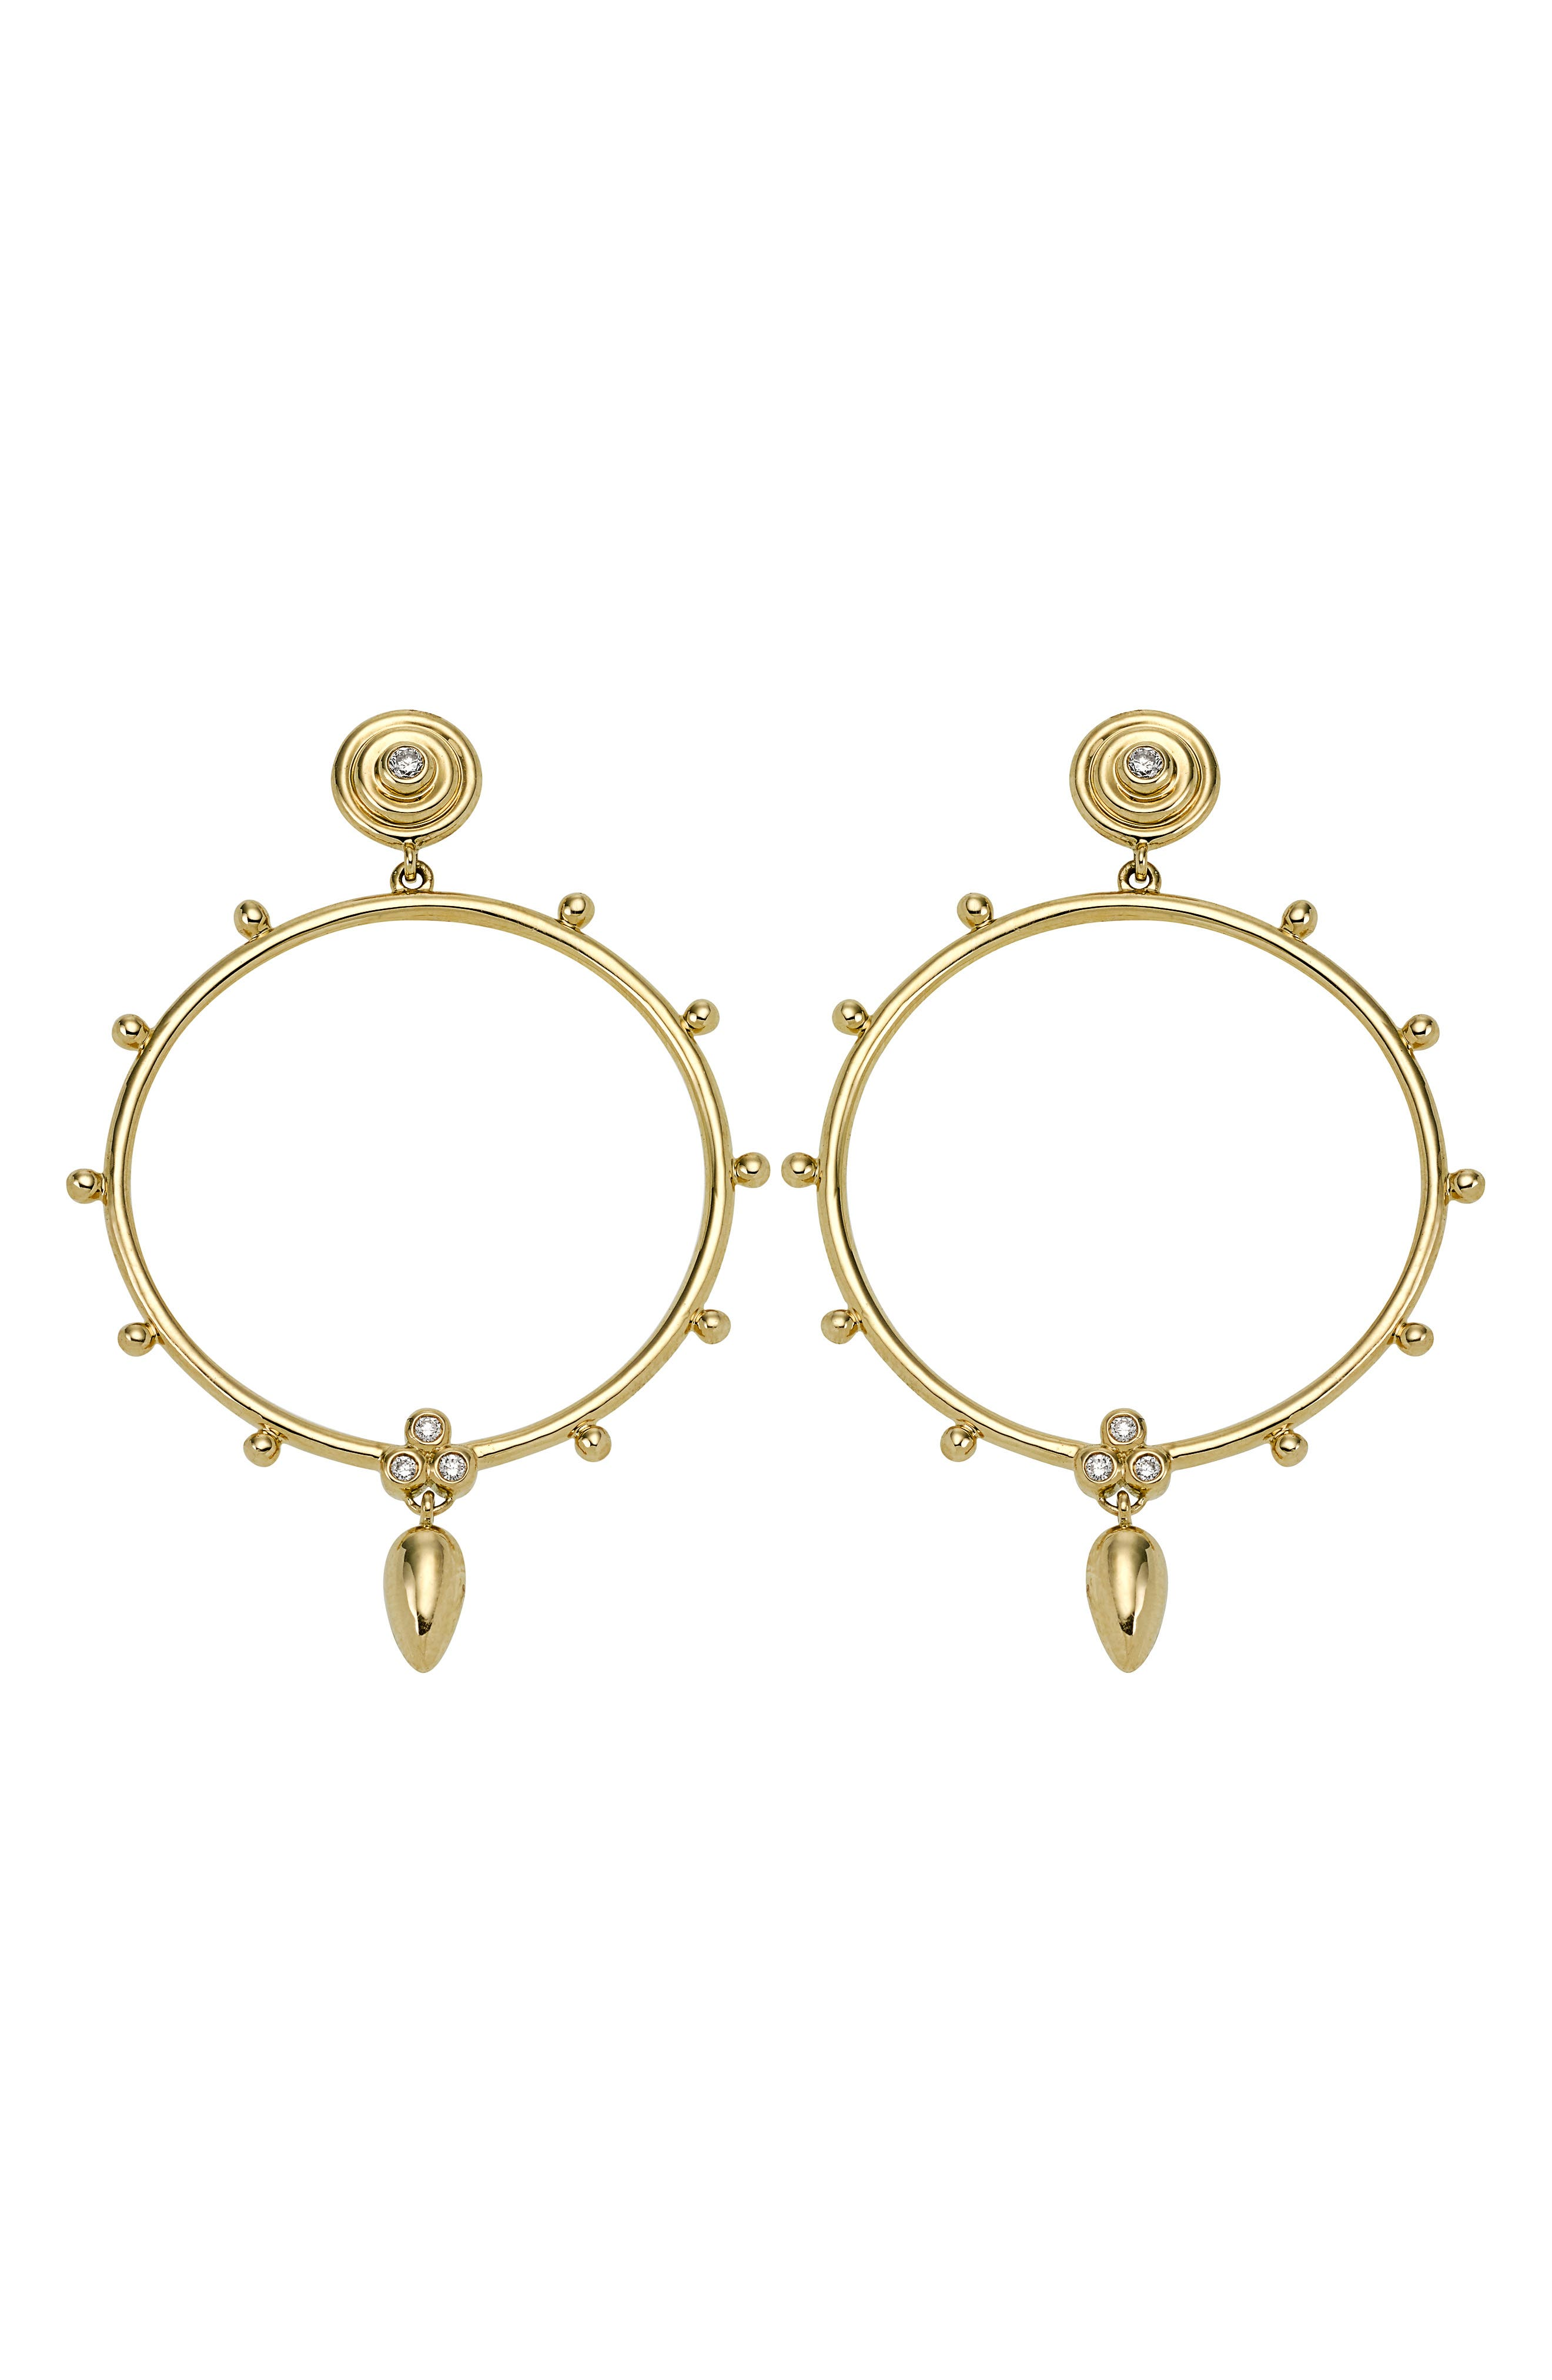 18K Gold & Diamond Circle Anfora Earrings,                         Main,                         color, YELLOW GOLD